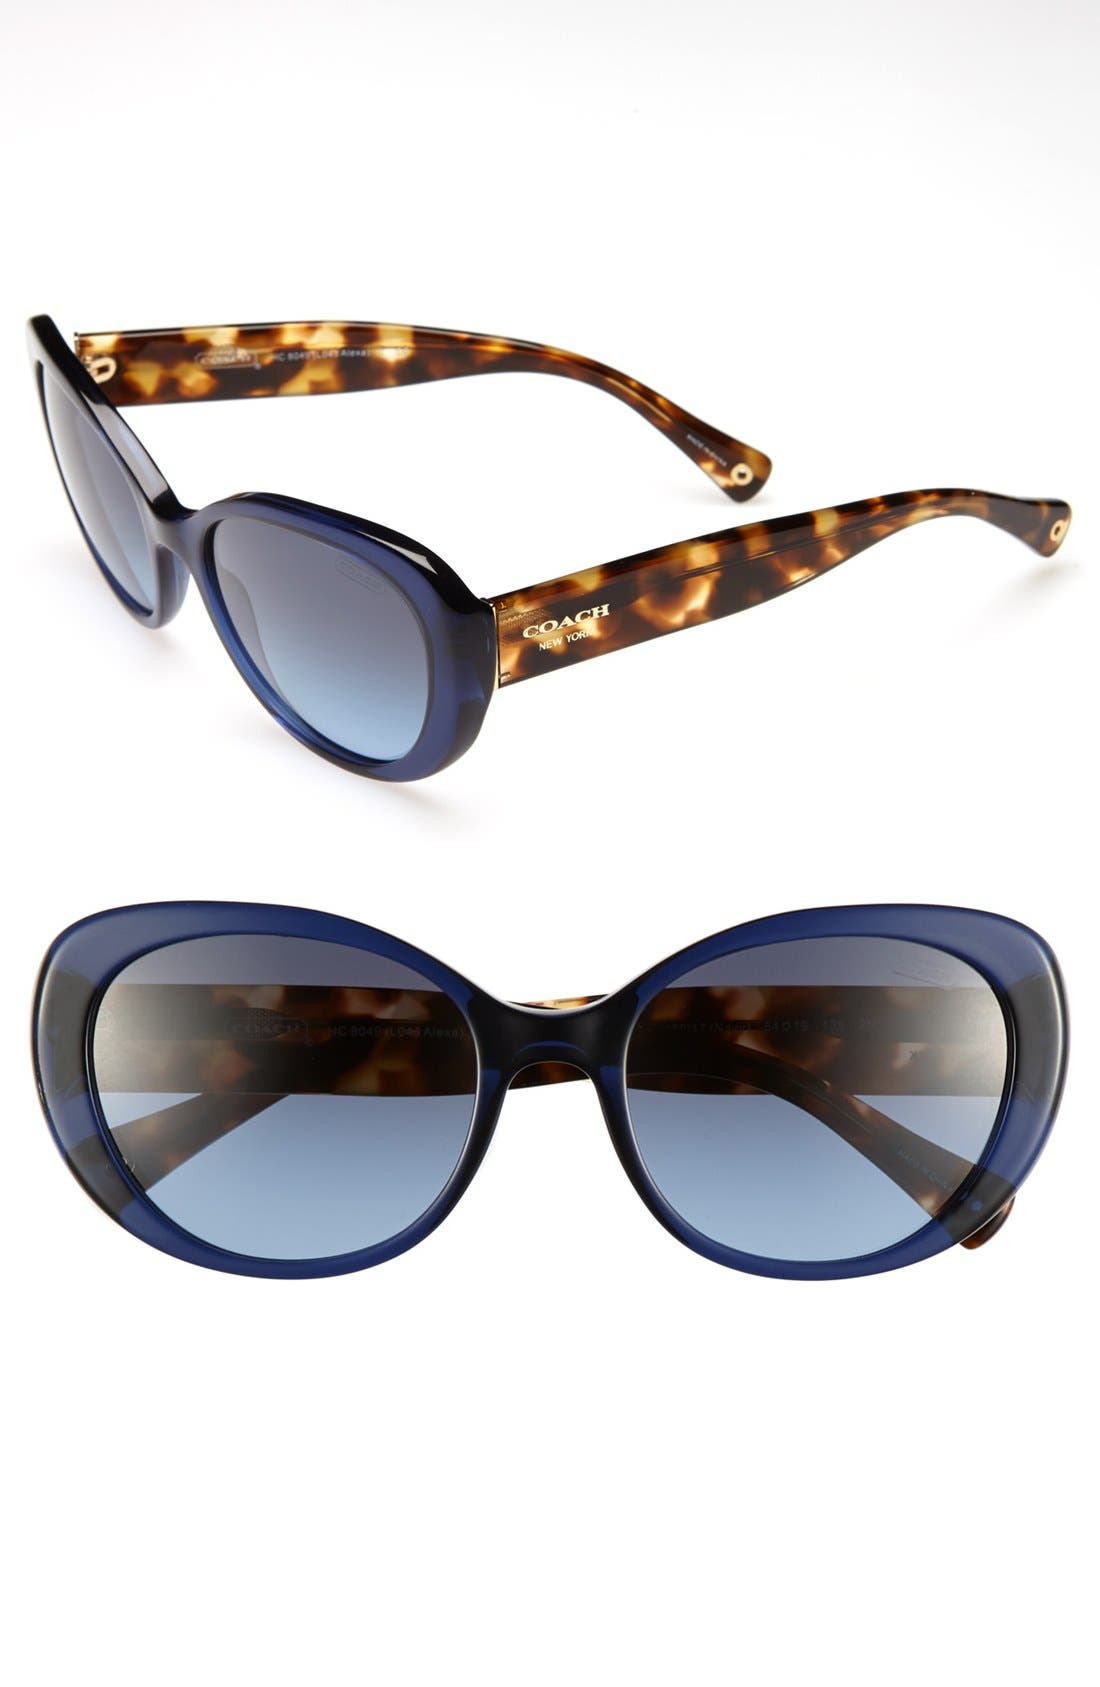 Alternate Image 1 Selected - COACH 'Alexa' 54mm Sunglasses